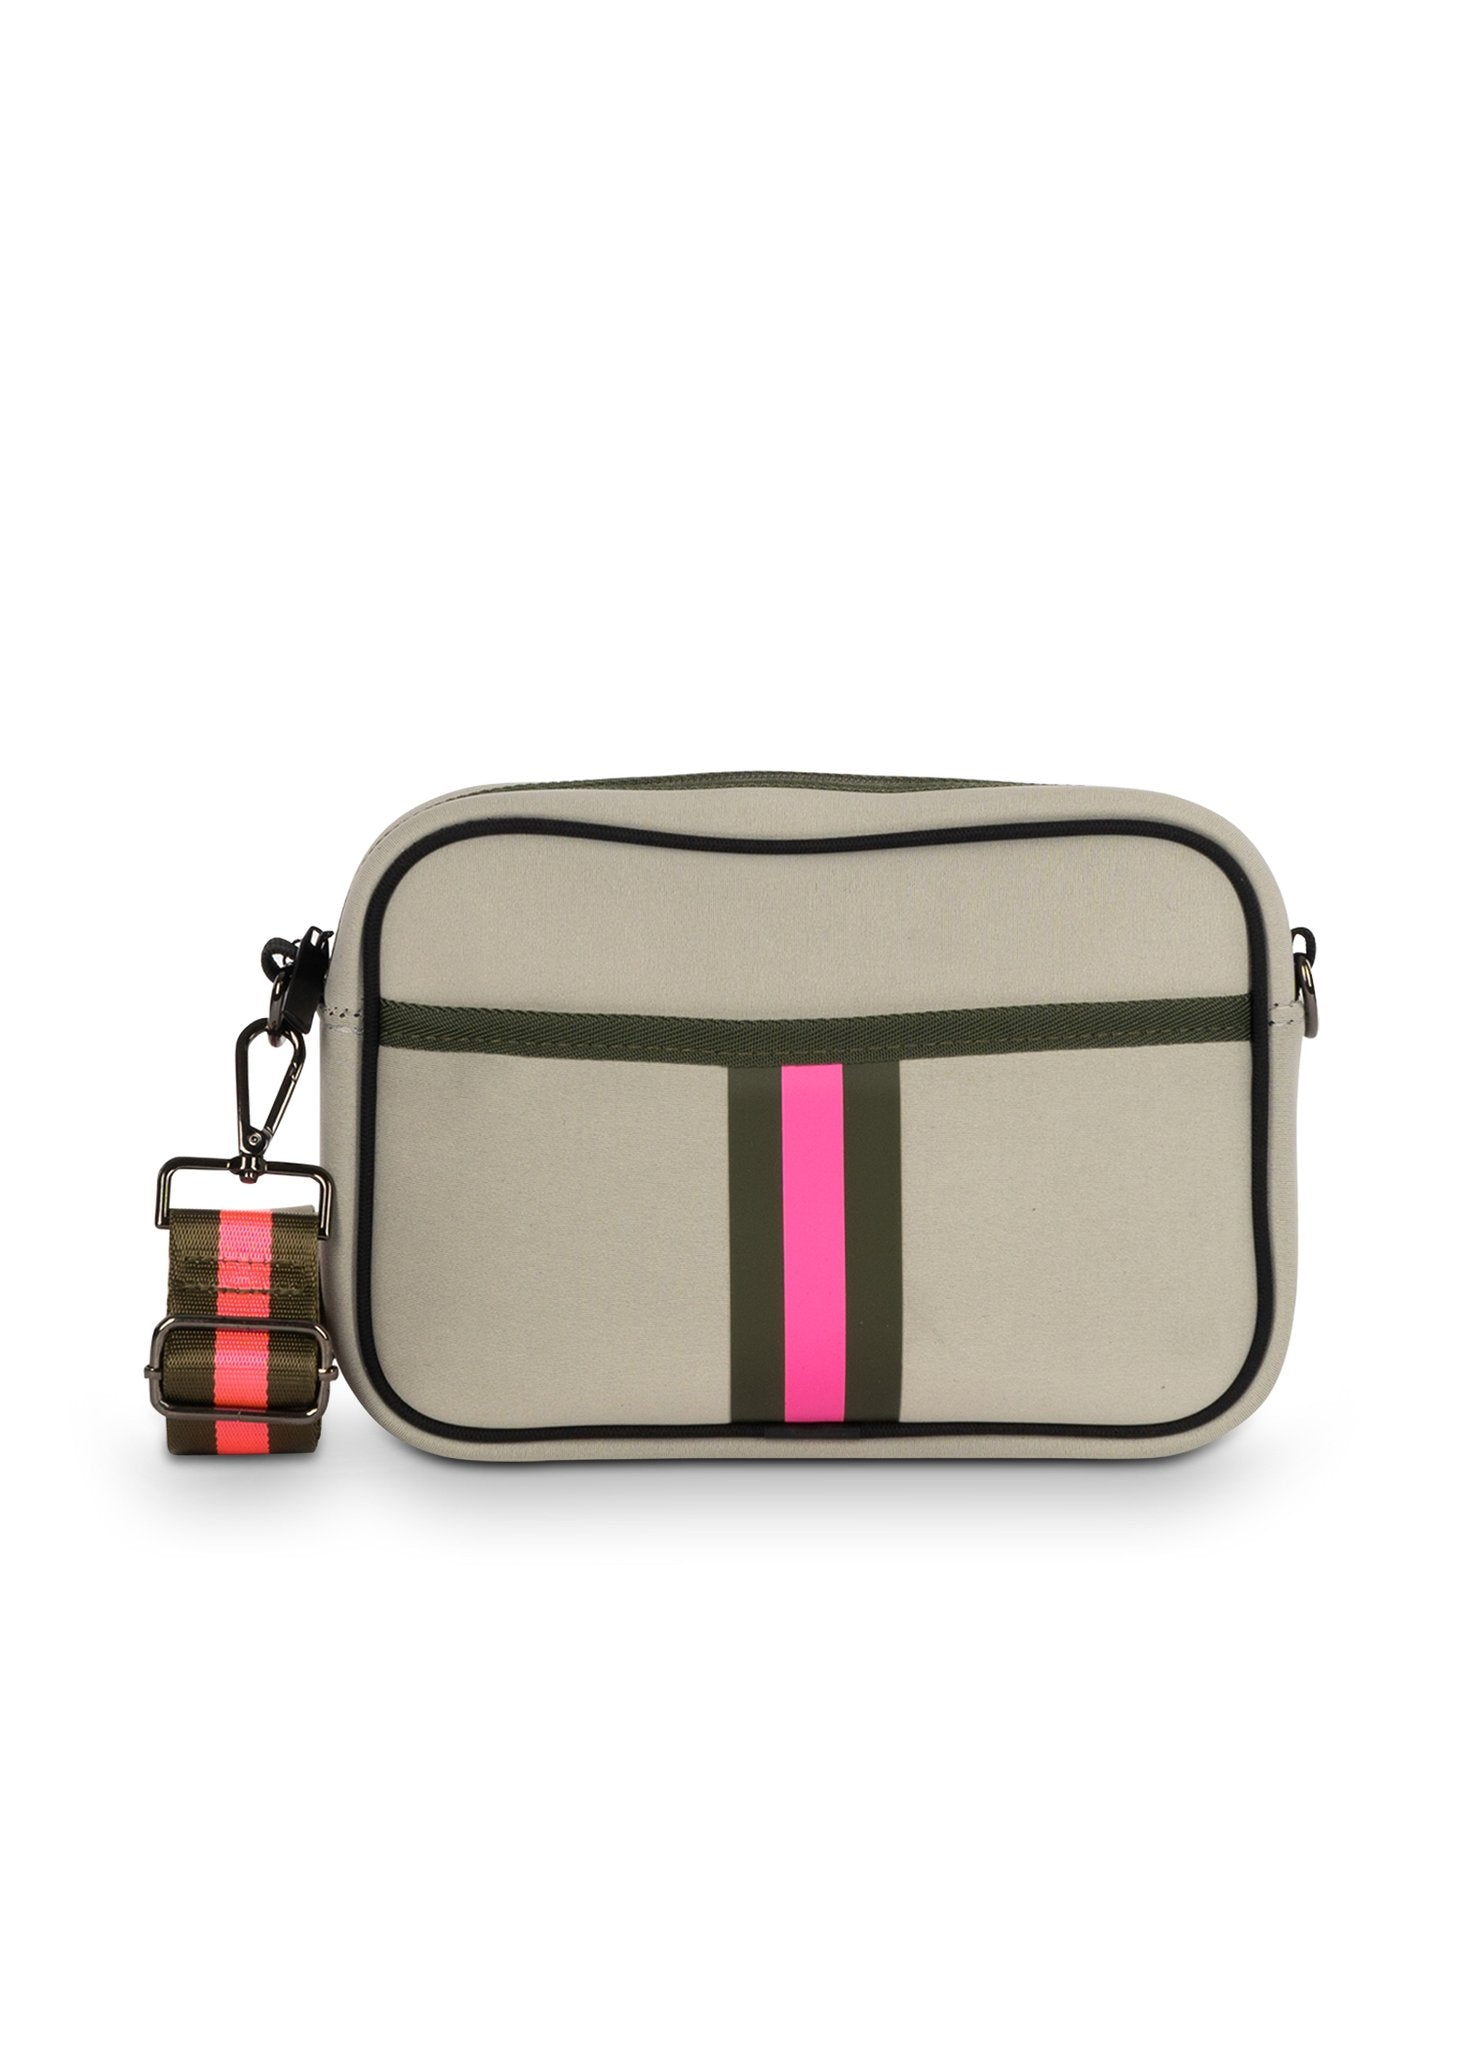 Haute Shore - Drew Swank Crossbody (Drew, Putty w/Army & Hot Pink Stripe)